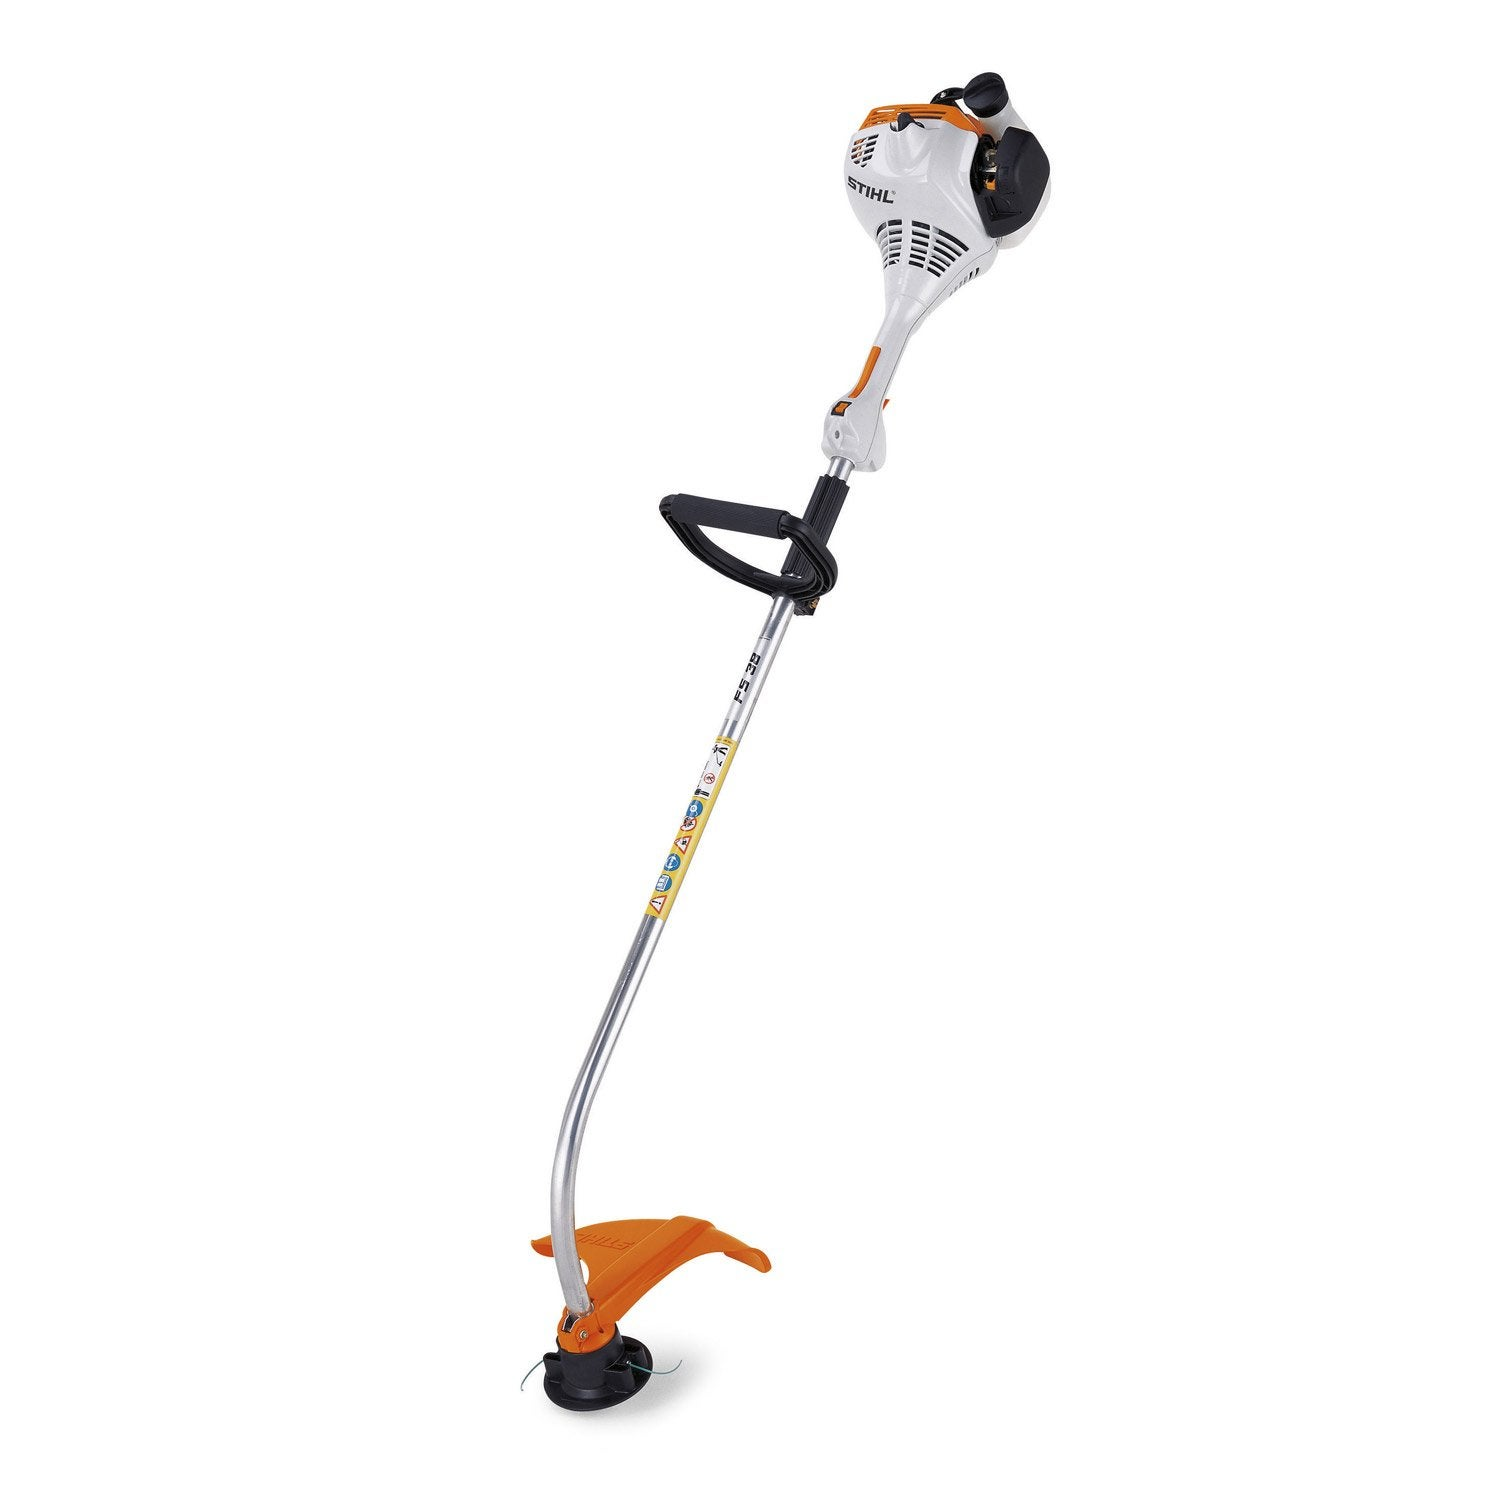 coupe bordures essence stihl fs 38 27 2 cm cm leroy merlin. Black Bedroom Furniture Sets. Home Design Ideas